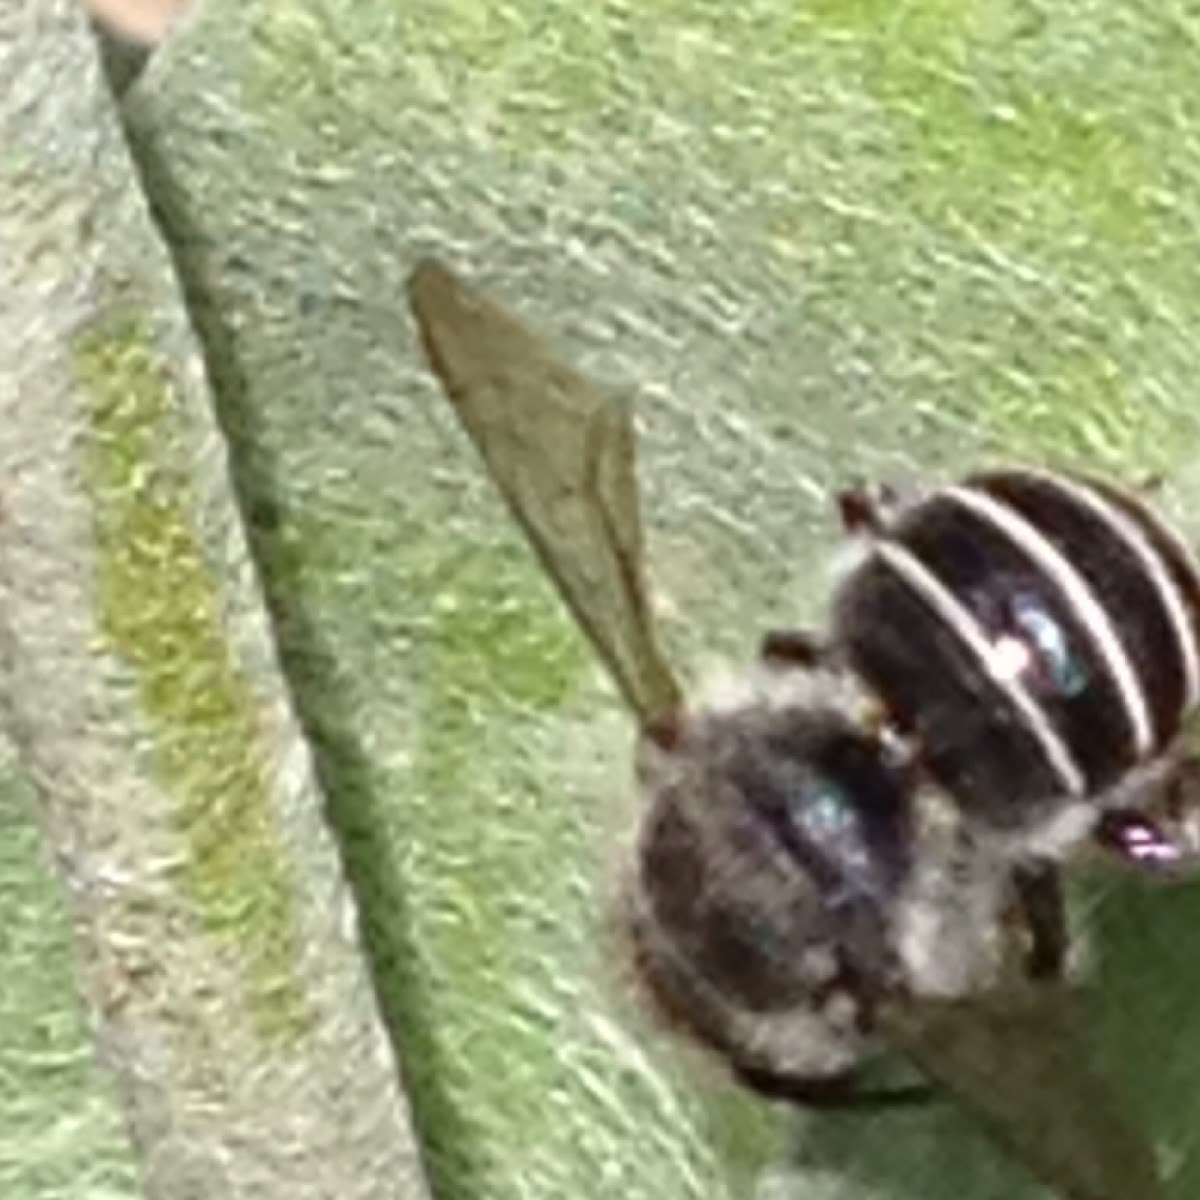 Black and white striped bee